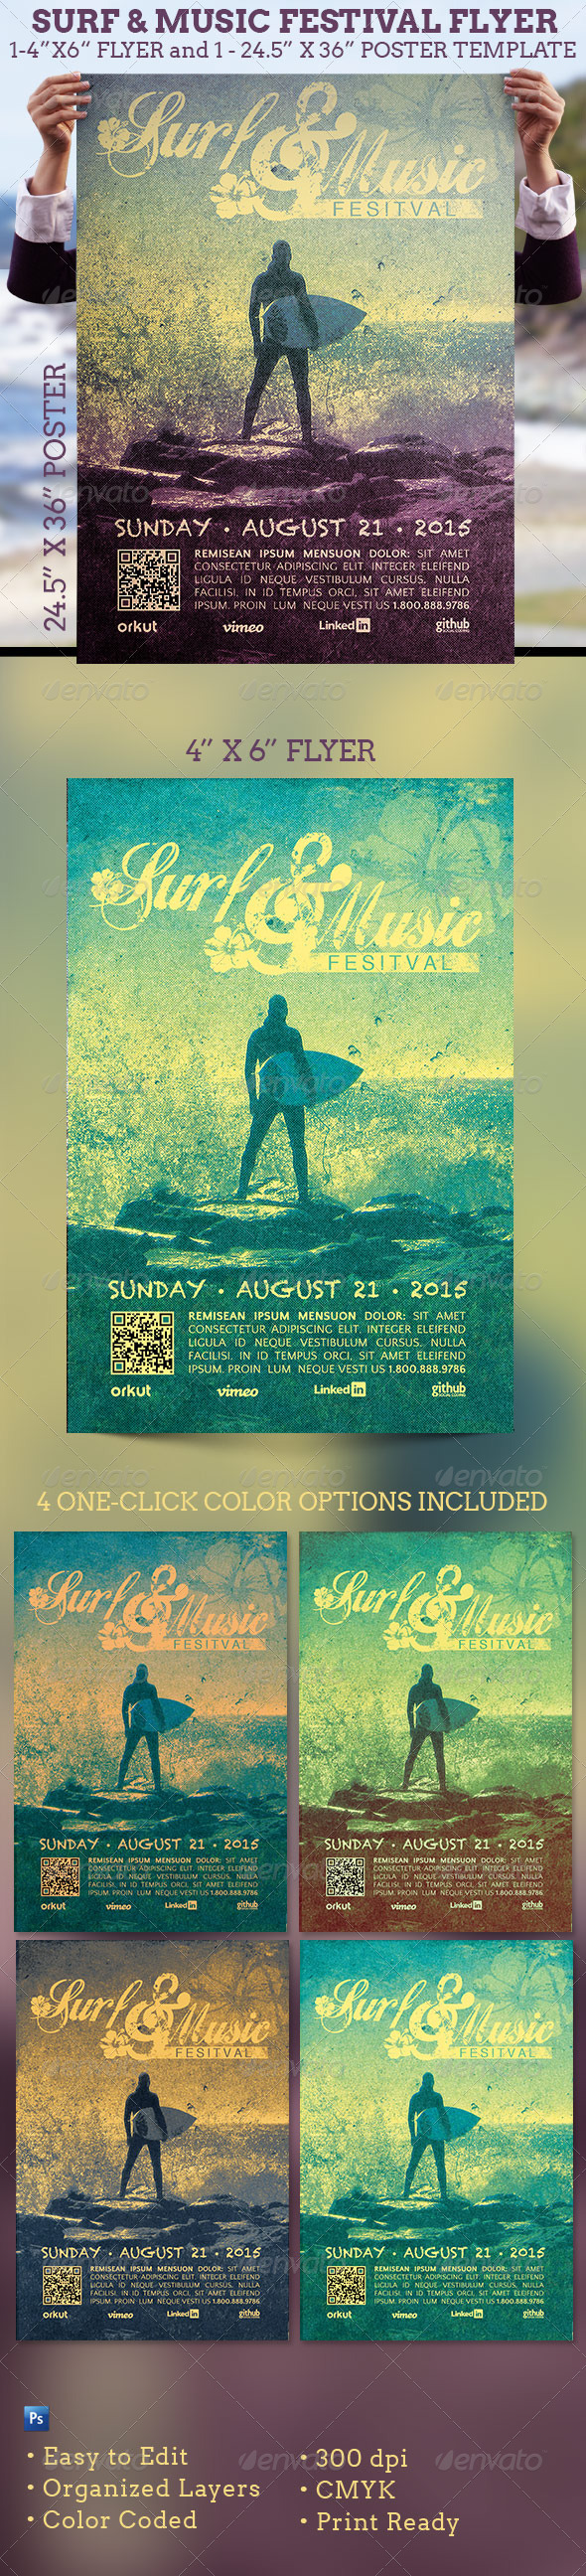 Surf and Music Festival Flyer and Poster Template  - Events Flyers